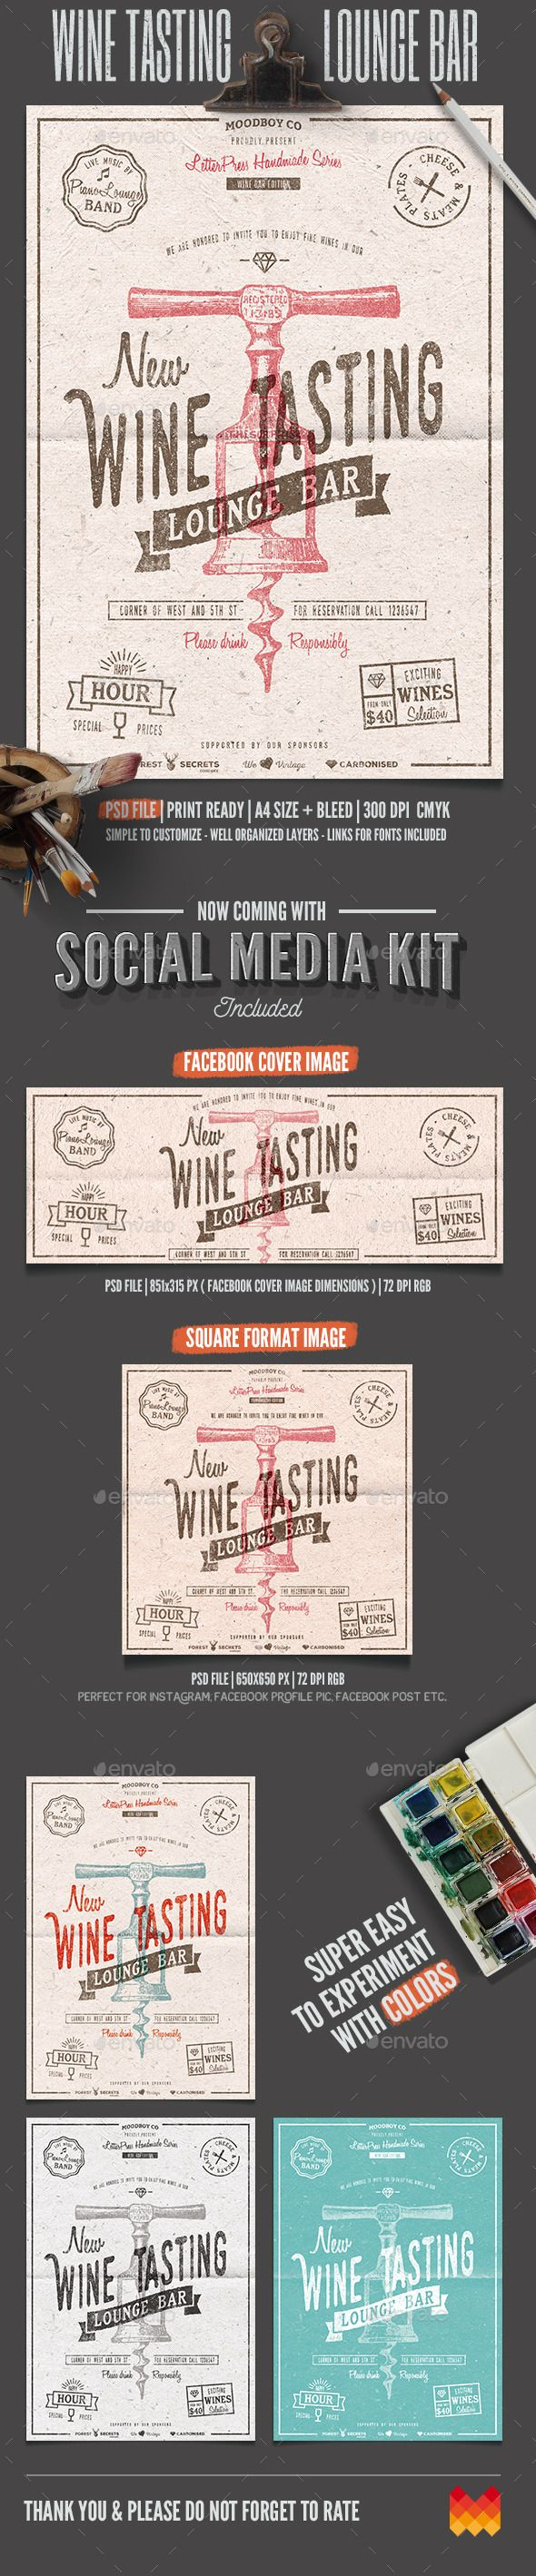 Poster design dimensions - Buy Wine Tasting Lounge Flyer Poster By Moodboy On Graphicriver Wine Tasting Lounge Flyer Poster This Flyer Poster Was Designed To Promote Wine